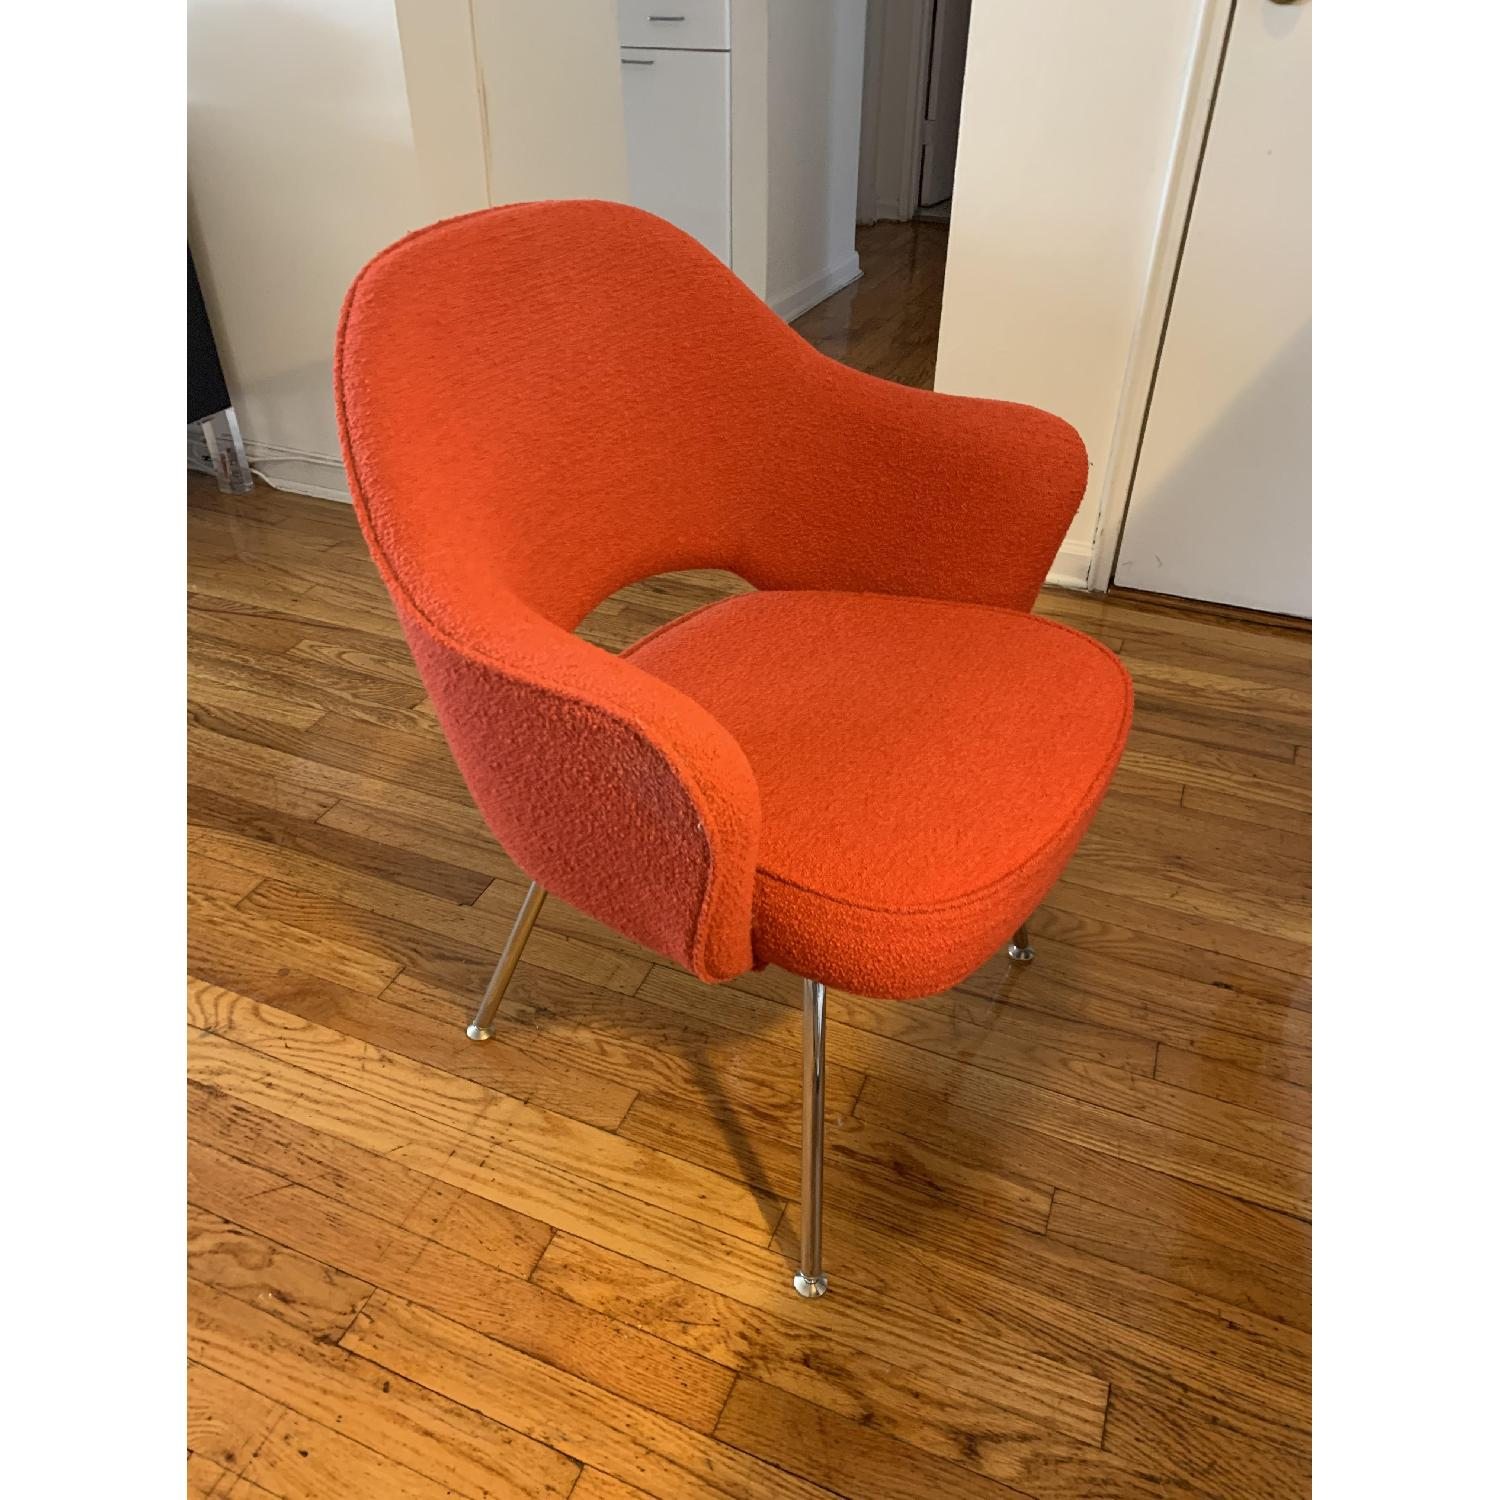 Knoll Saarinen Executive Chair in Red/Burnt Orange-0